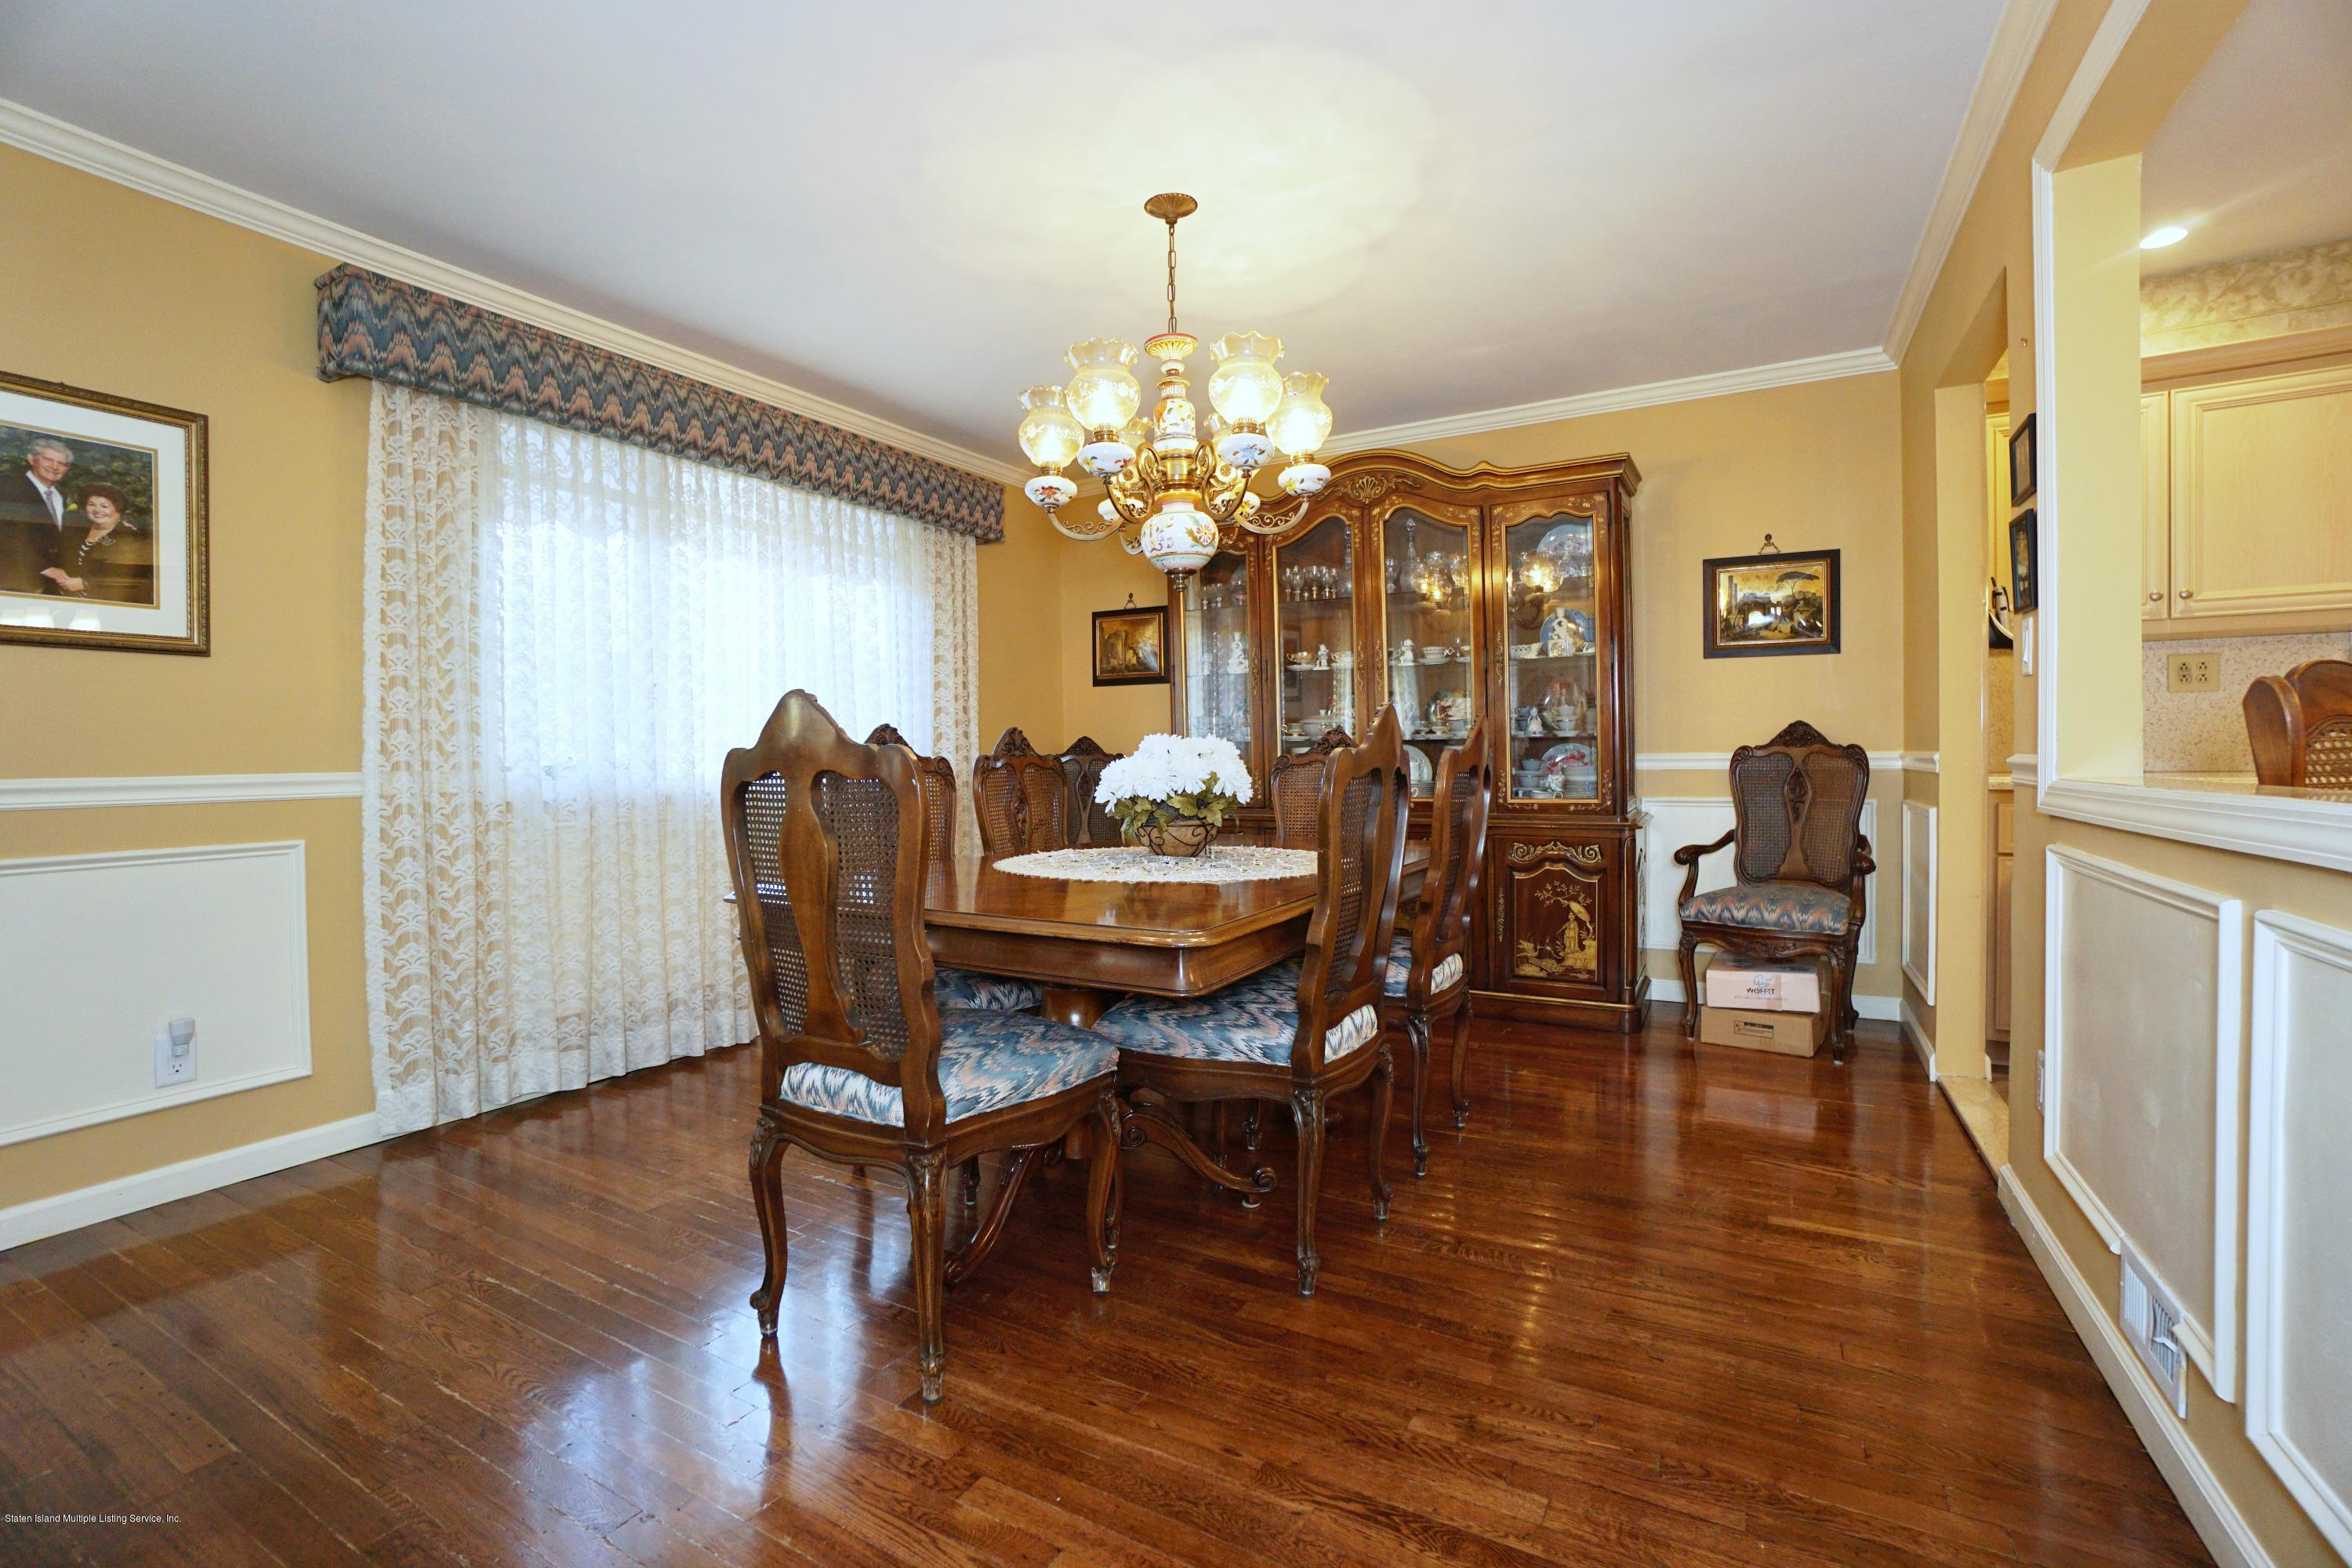 Single Family - Detached 77 Cedarview Avenue  Staten Island, NY 10306, MLS-1137631-10